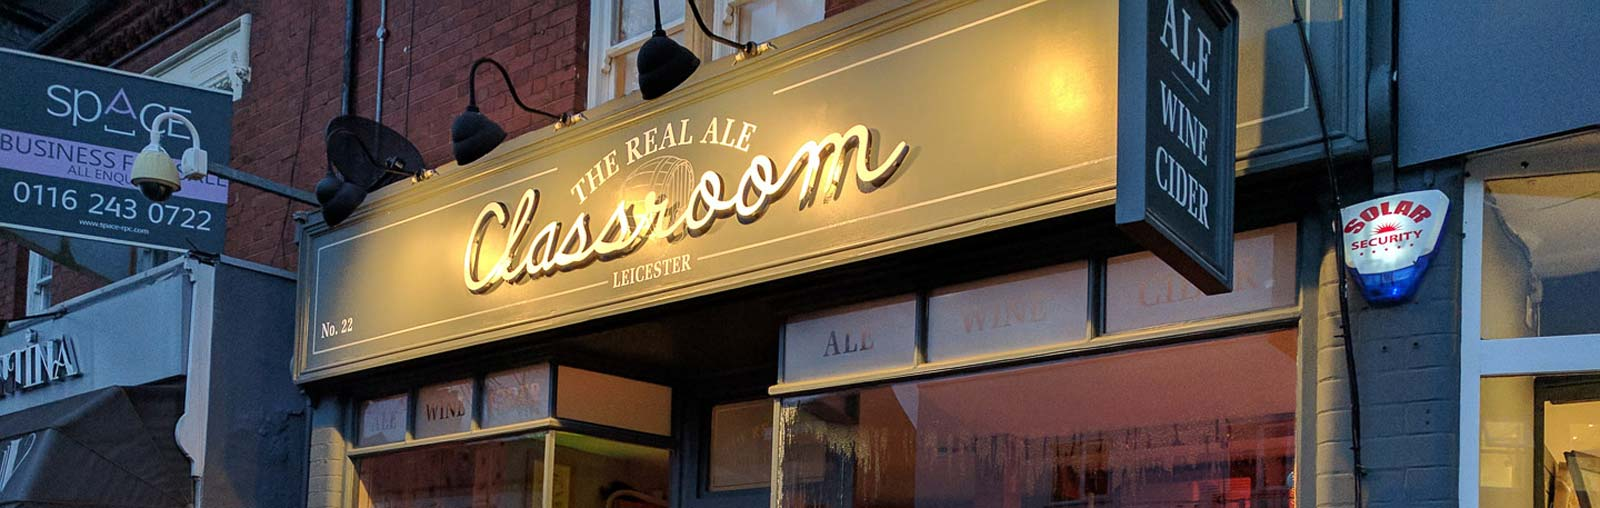 Leicester The classromm real ale pub